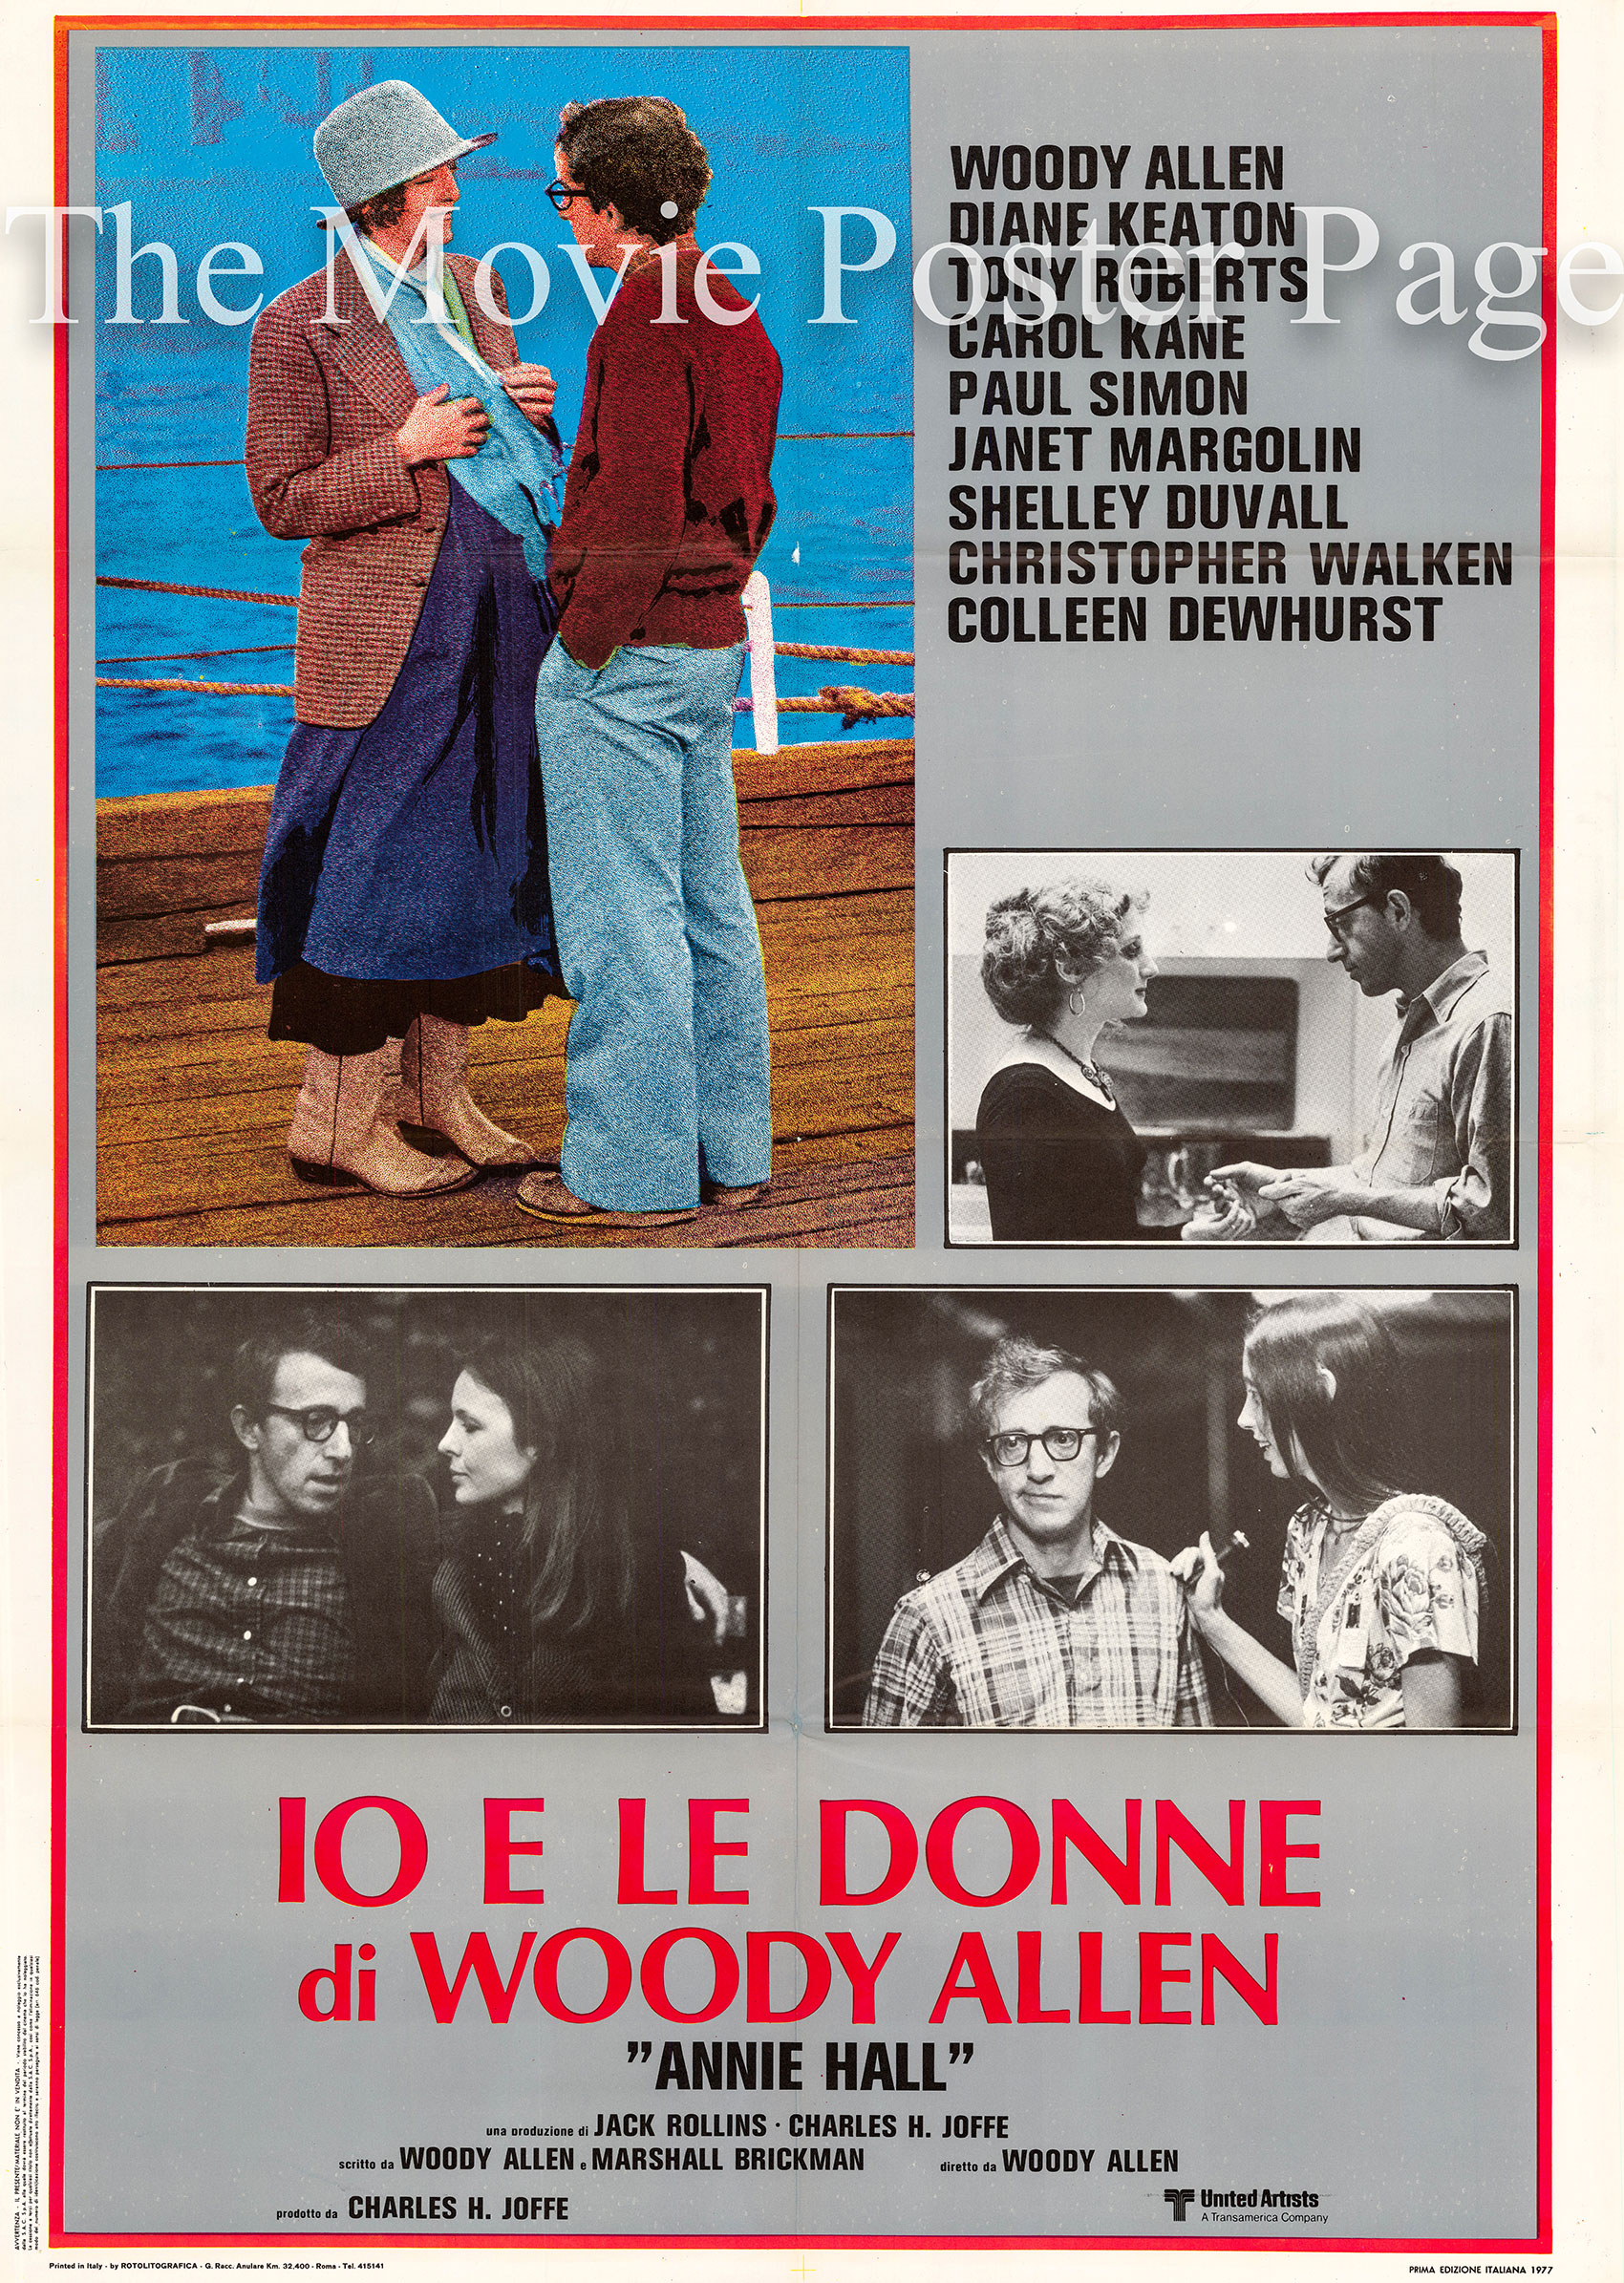 Pictured is an Italian two-sheet promotional poster for the 1977 Woody Allen film Annie Hall starring Woody Alen as Alvy Singer and Diane Keaton as Annie Hall.